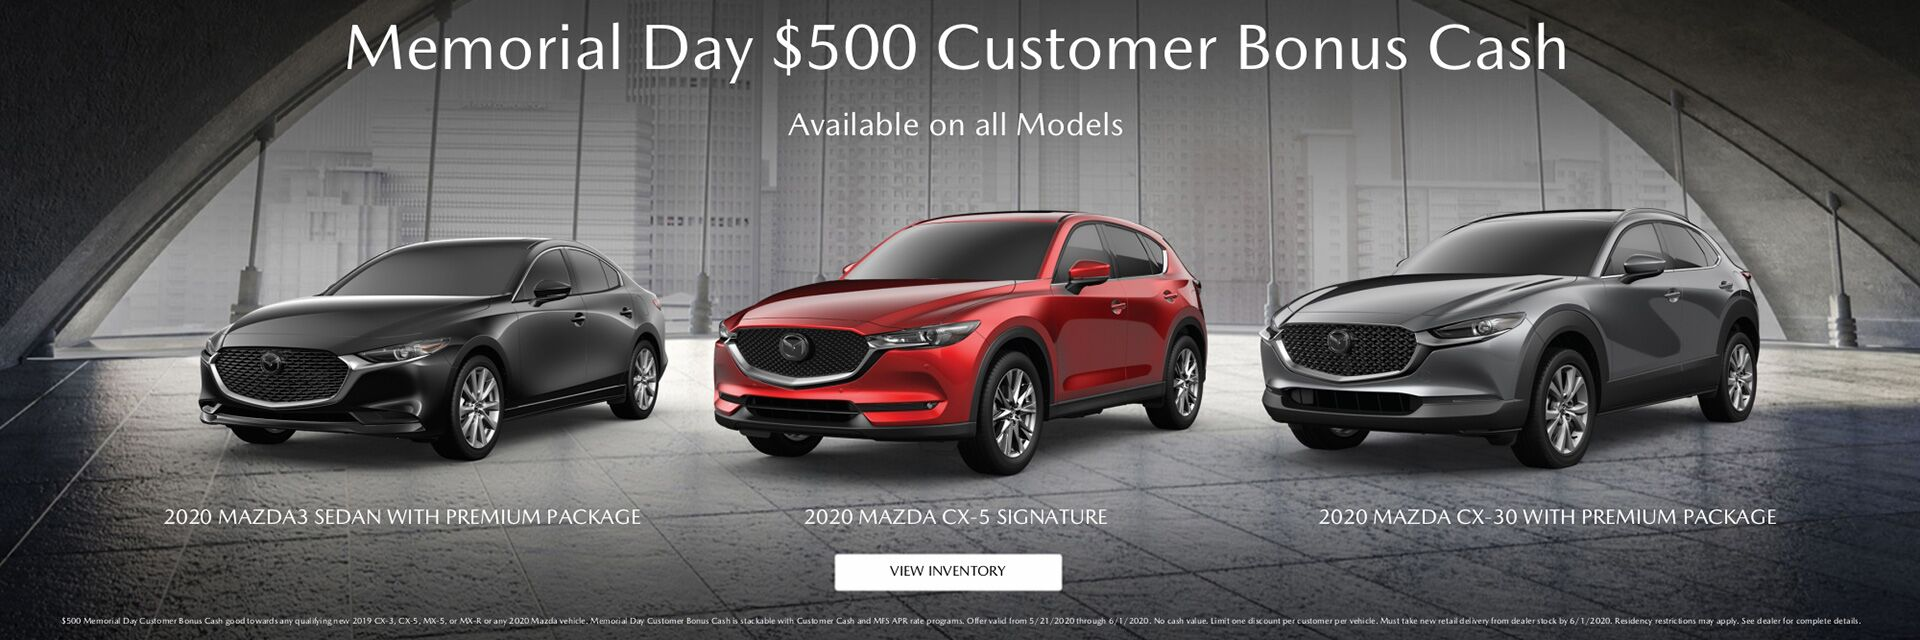 Memorial Day Bonus Cash (OEM Asset)